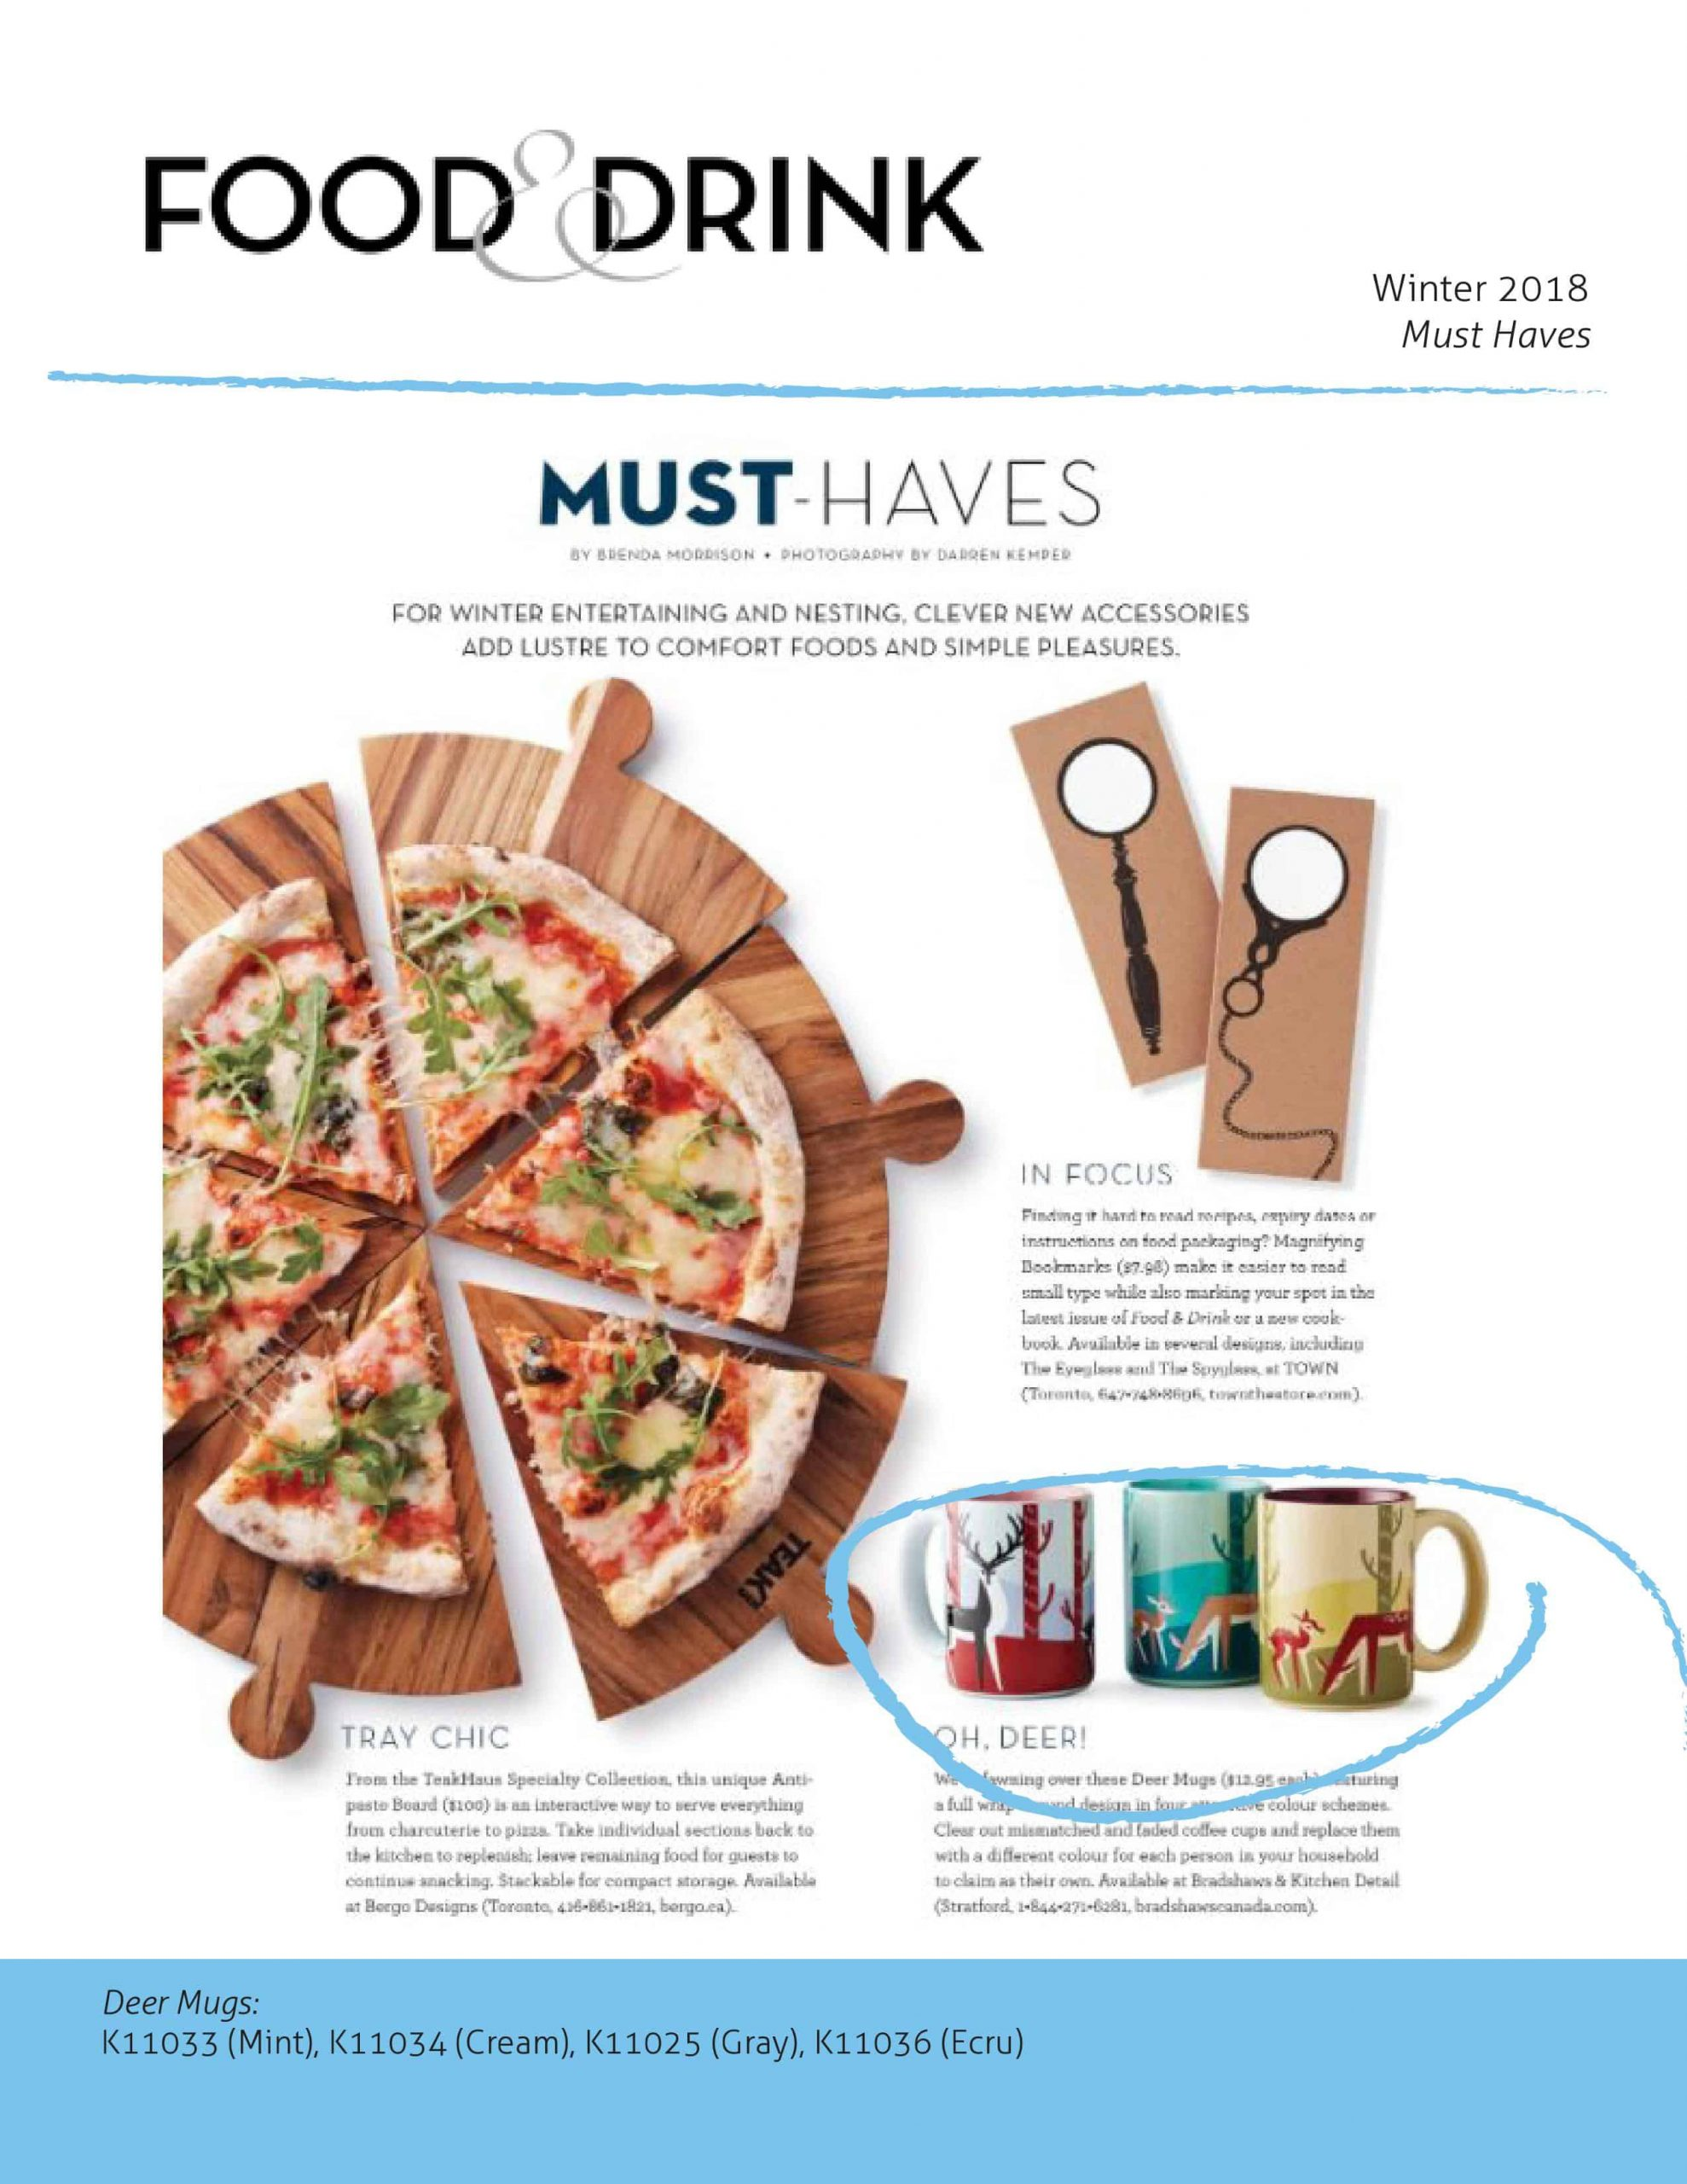 Food & Drink Winter 2018 Issue